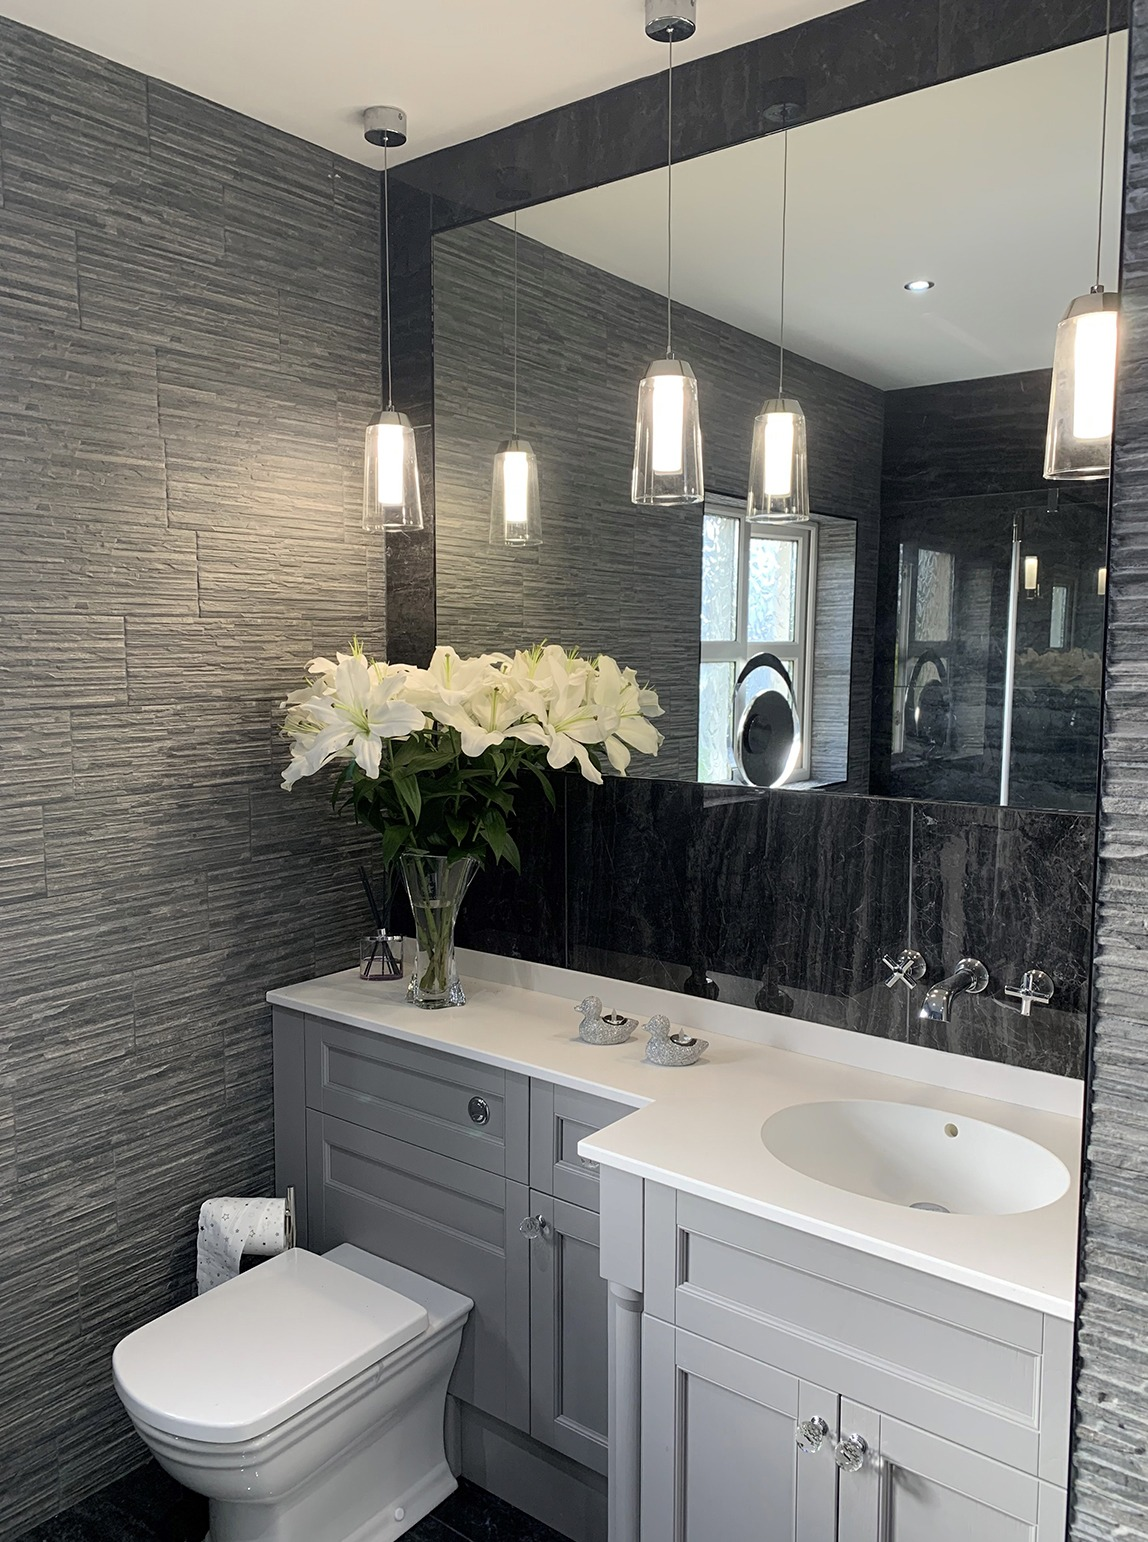 Bathroom refurbishment - Mirror